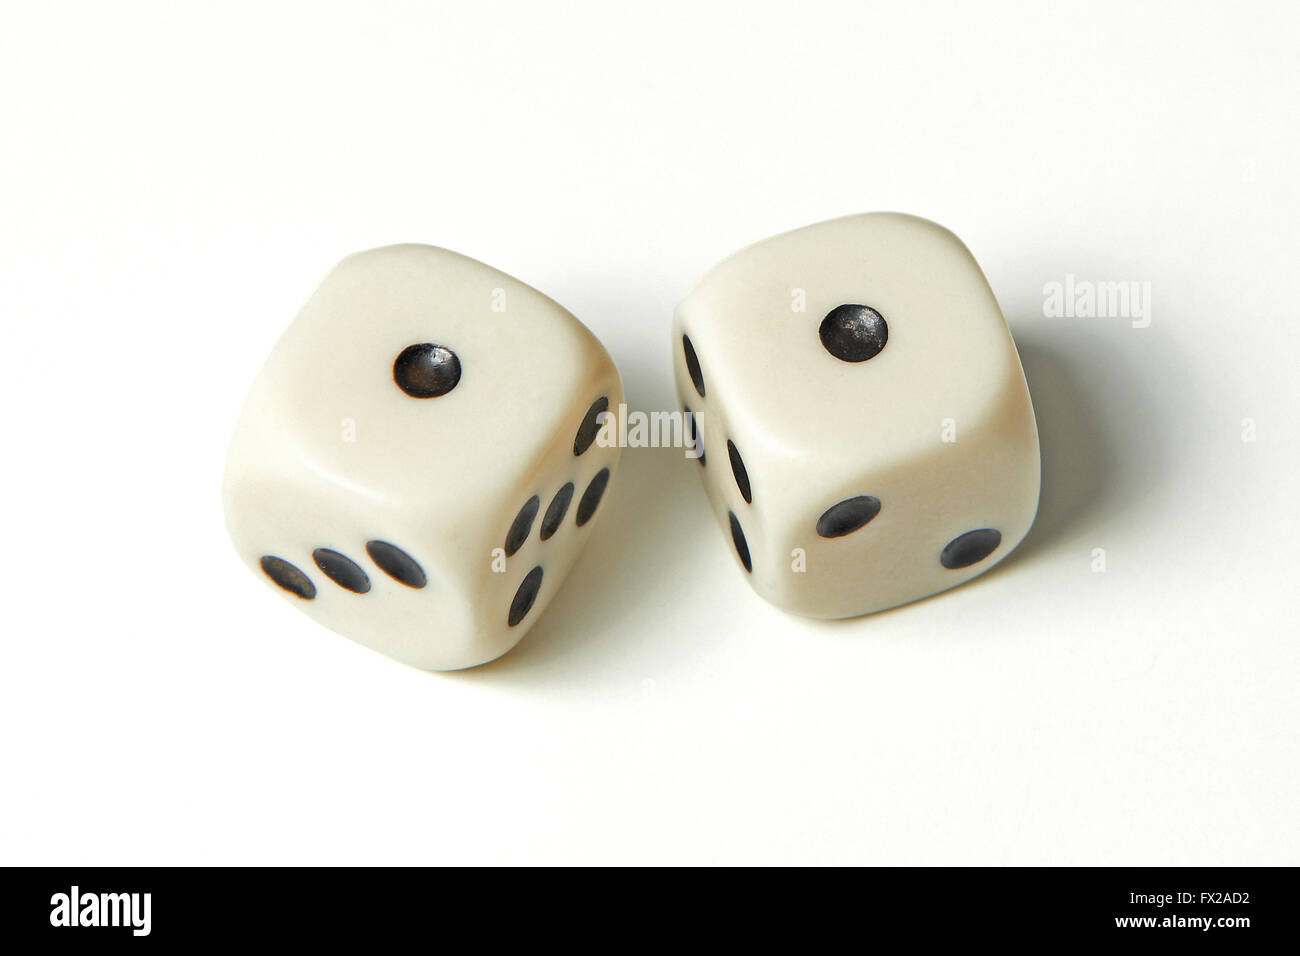 Pair of thrown dices showing two ones also called snake eyes - Stock Image